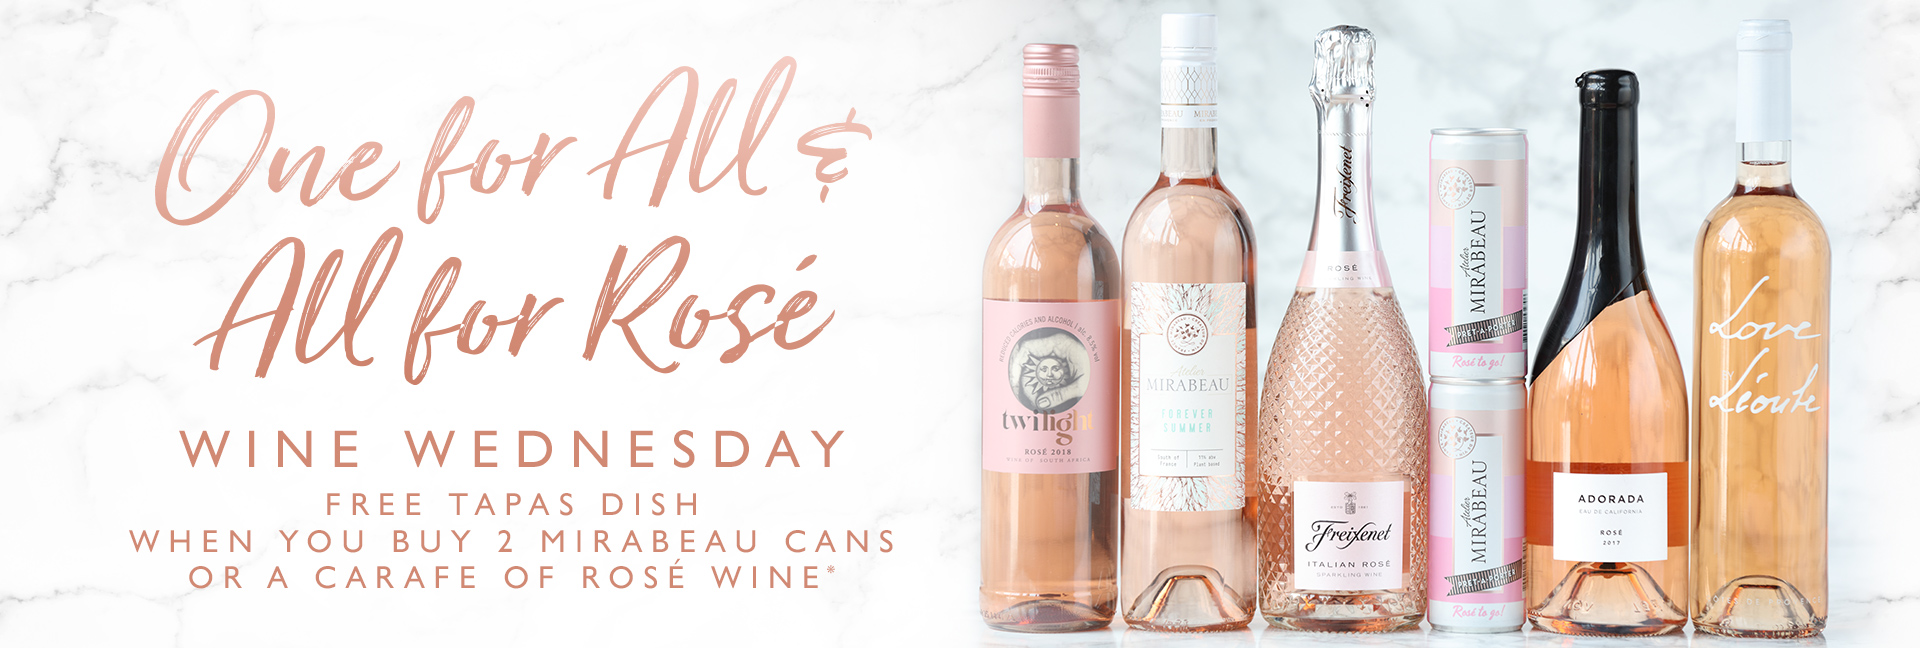 Wine Wednesday at All Bar One Harrogate